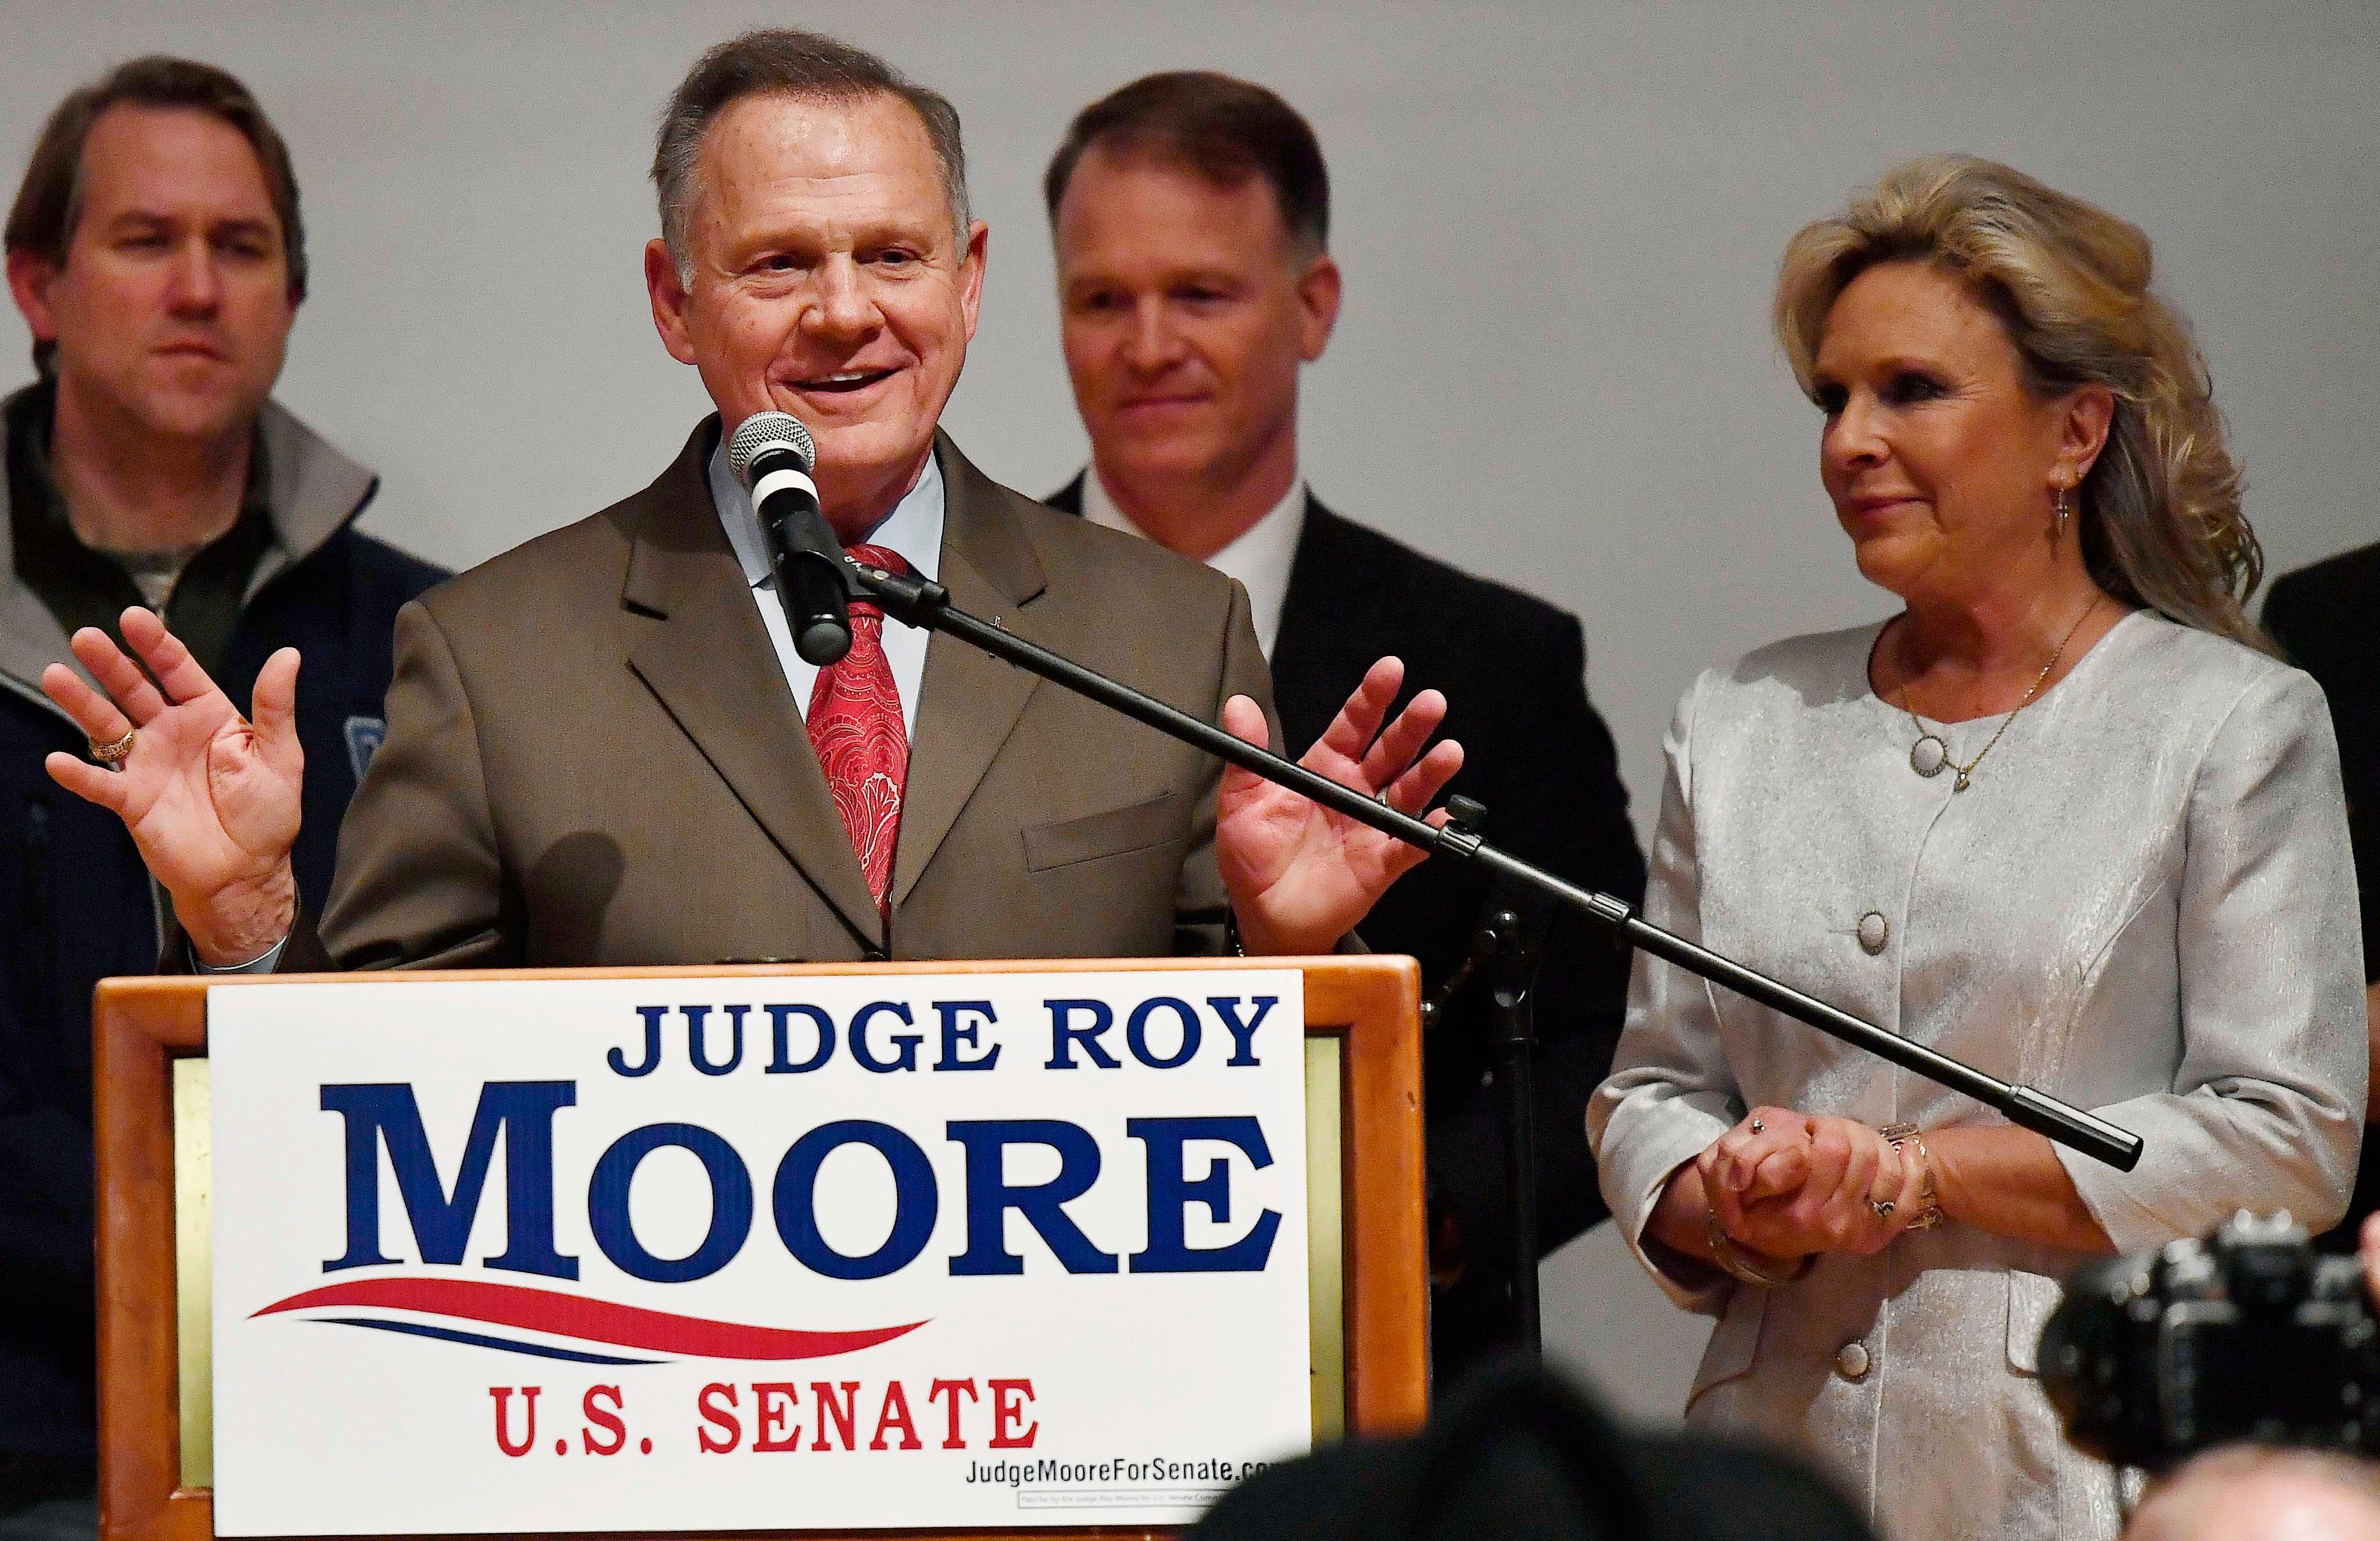 U.S. Senate candidate Roy Moore speaks as his wife Kayla Moore, right, listens at the RSA activity center, Tuesday, Dec. 12, 2017, in Montgomery, Ala. (AP Photo/Mike Stewart)